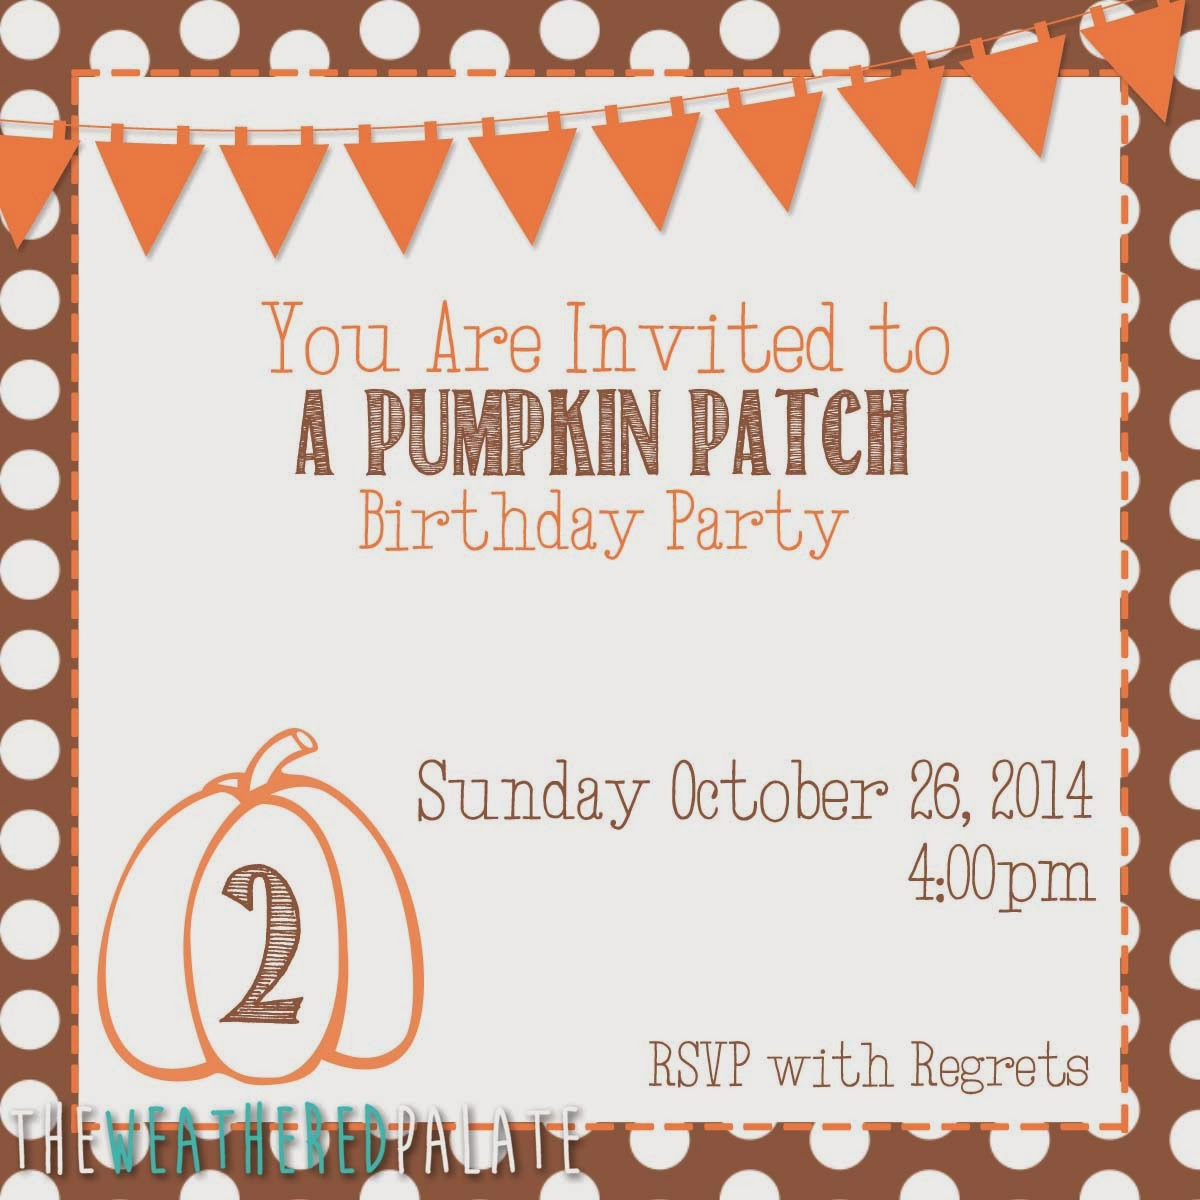 Pumpkin Patch Birthday Party | The Weathered Palate